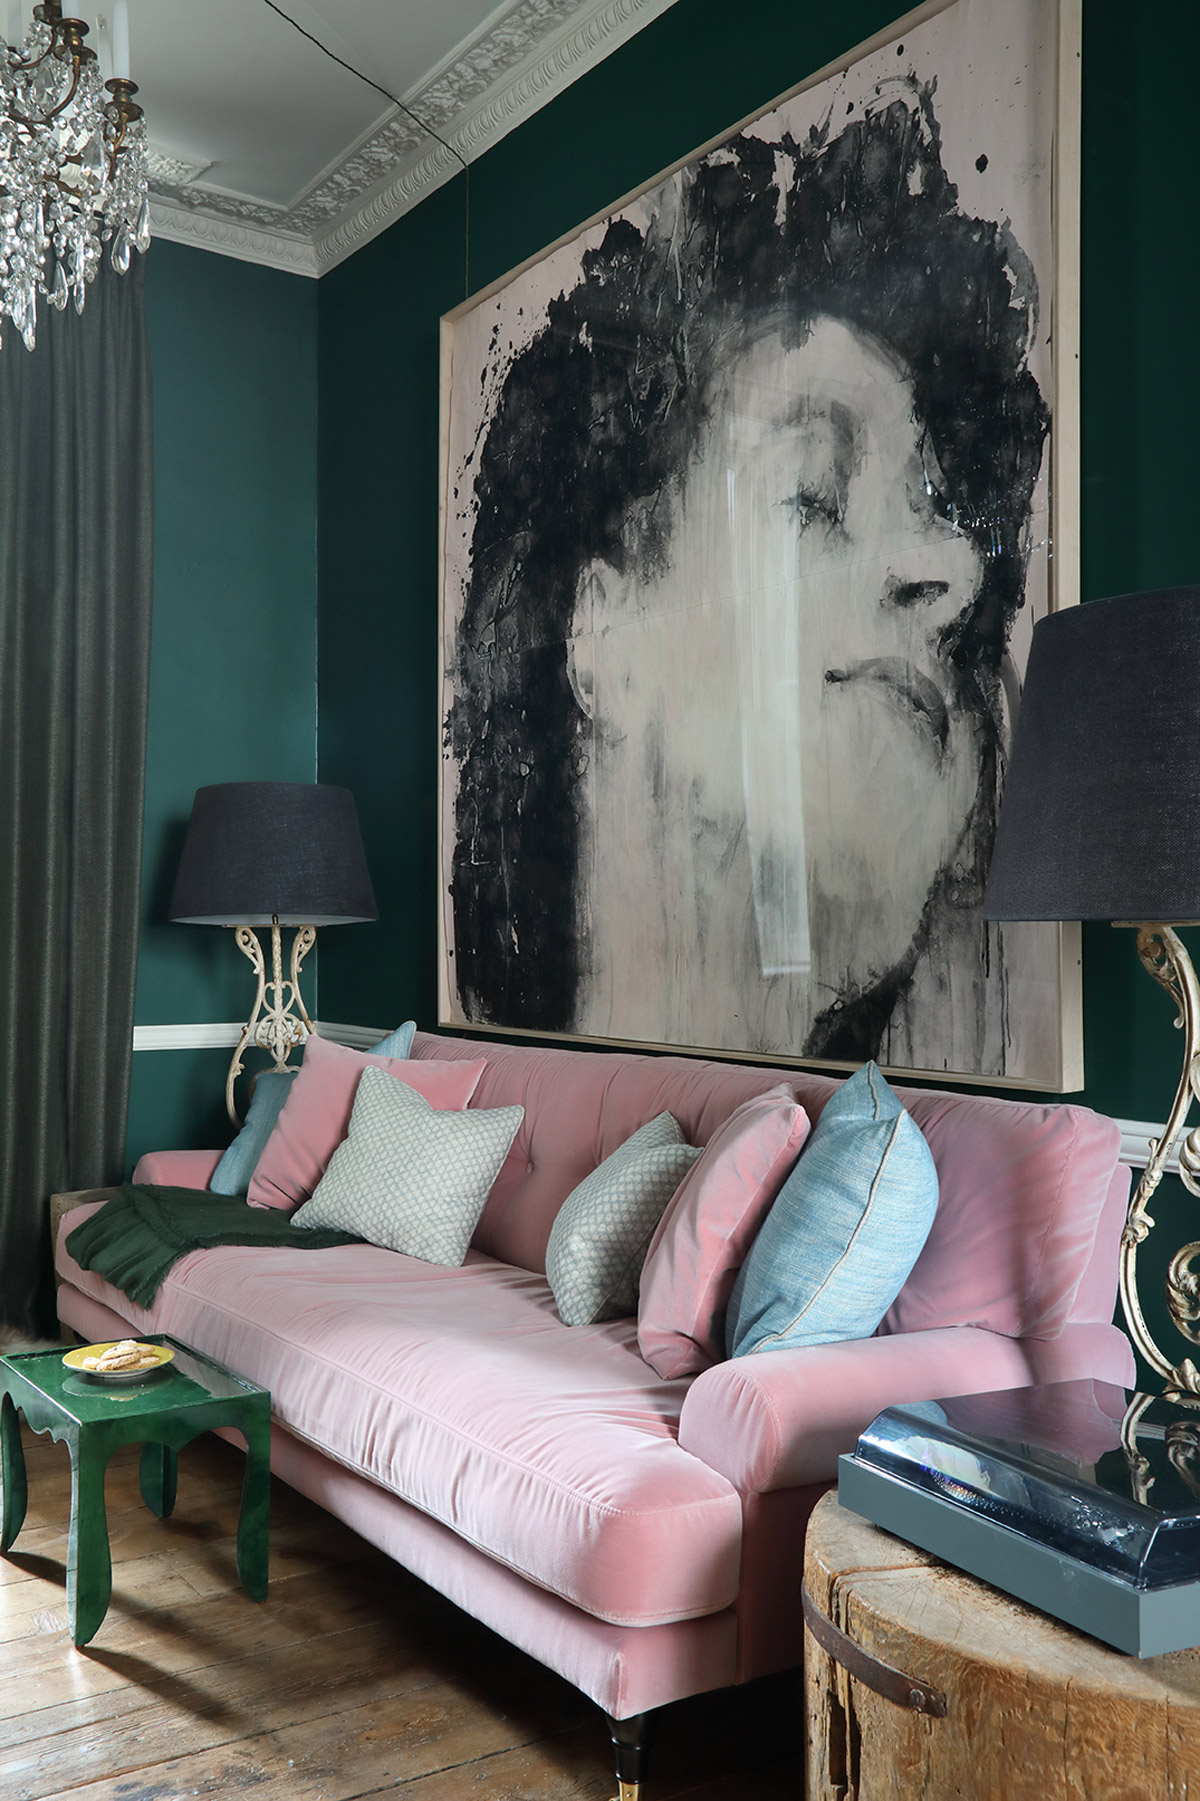 Interior designer, Ana Engelhorn project image of living room interior with pink sofa